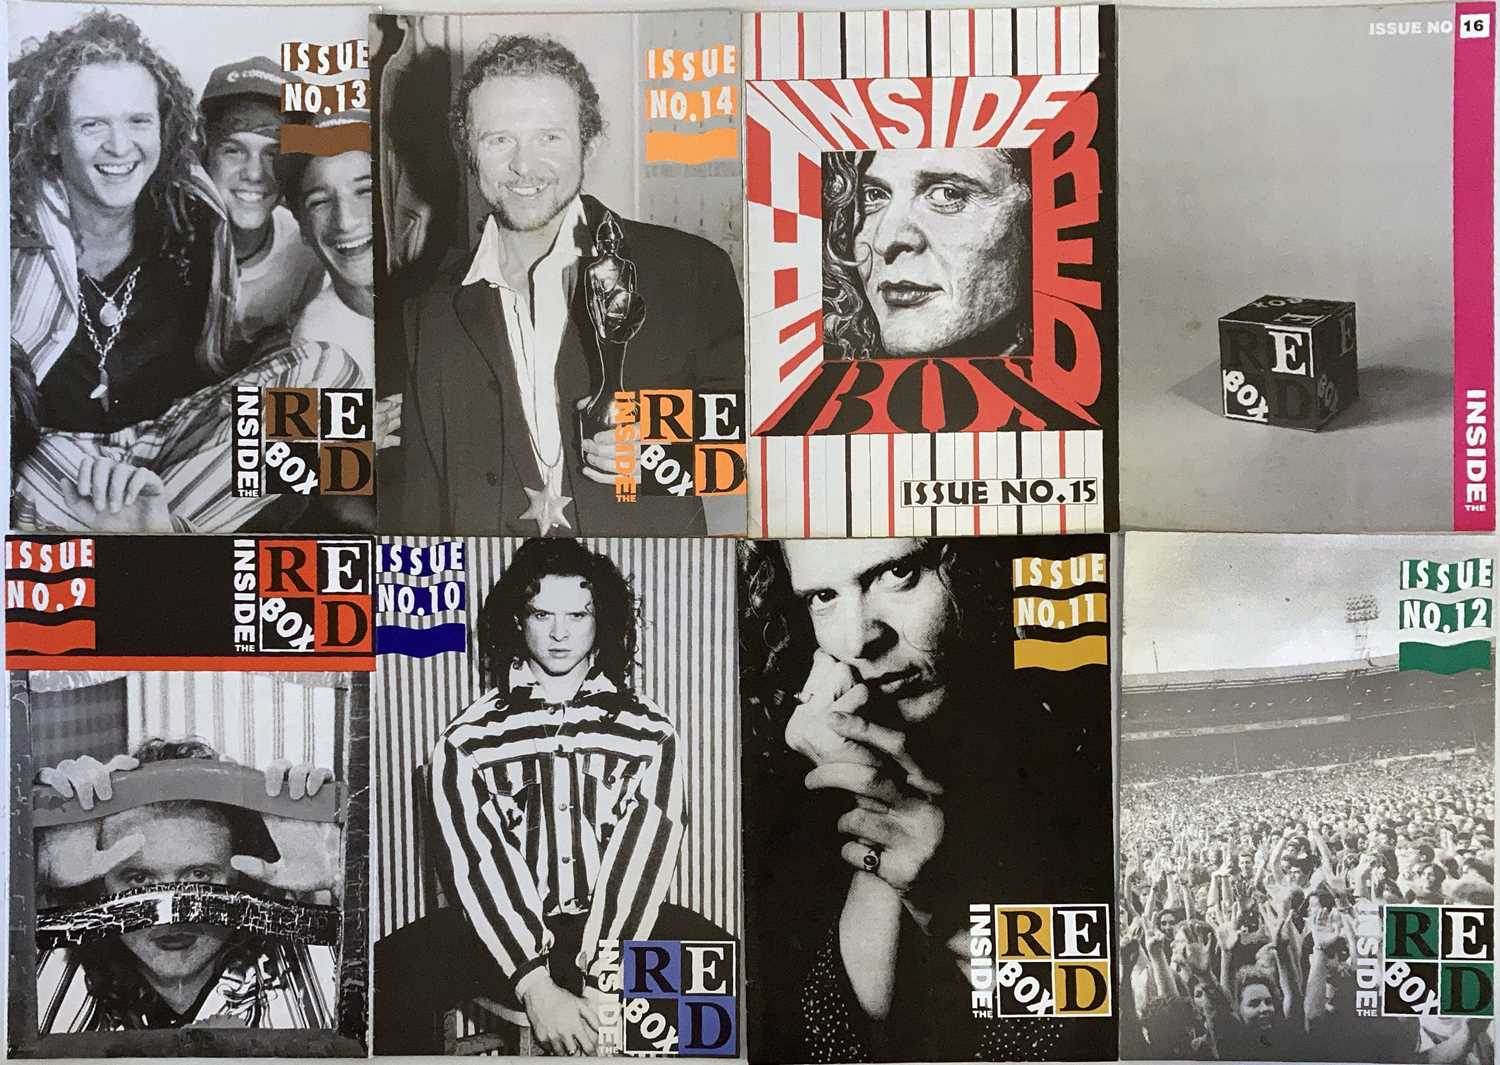 SIMPLY RED MEMORABILIA INC SIGNED ITEMS. - Image 5 of 15